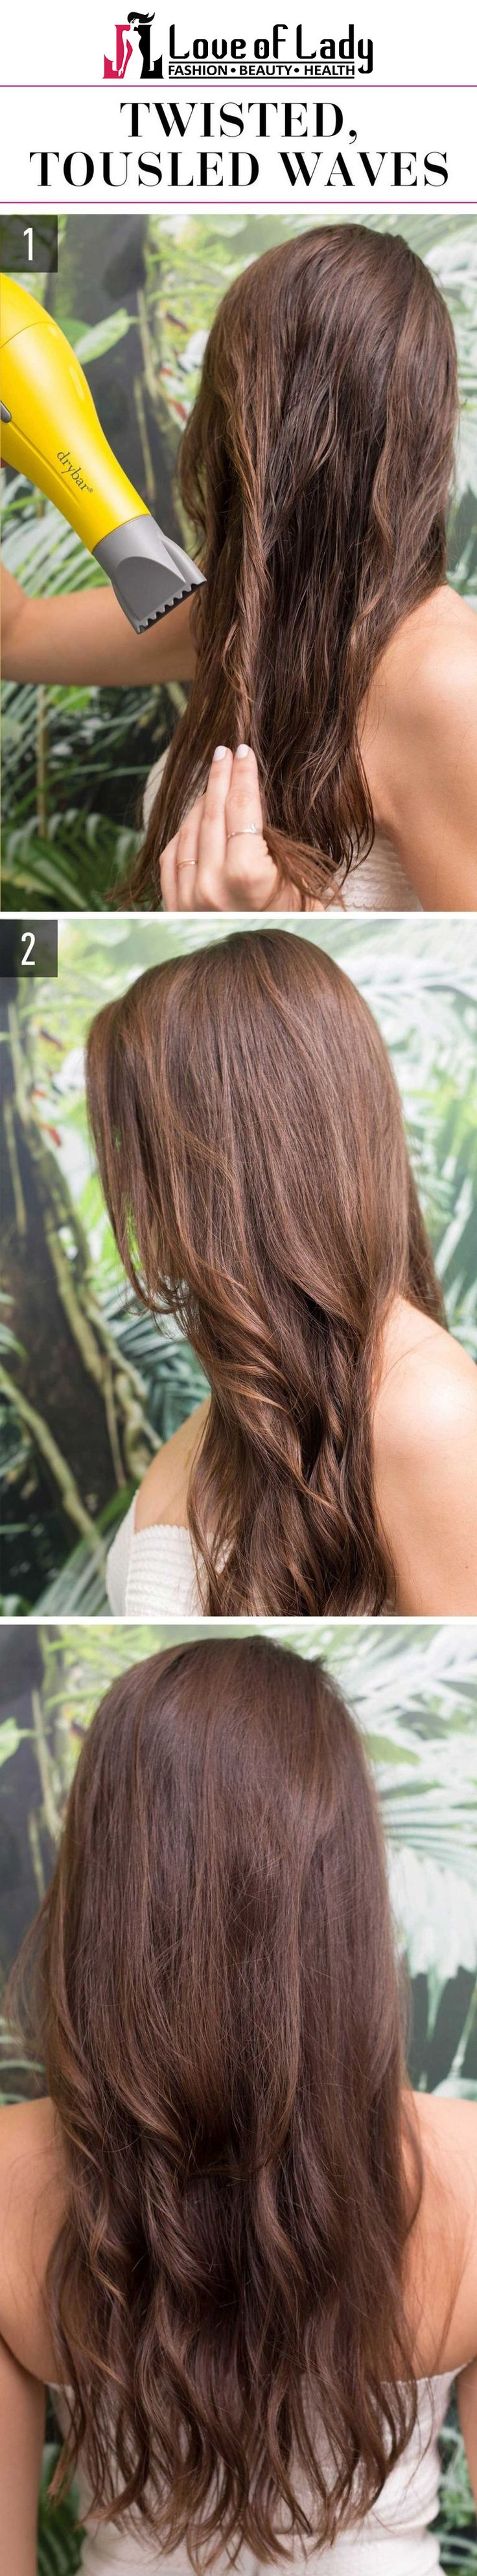 Twisted, Messy Waves Turn the segments of damp hair follicles (make the segments big or small if you wish looser or tighter waves, correspondingly) and gust with a blow-dryer, focusing the heat down so you don't unsettle the cuticle and source frizz. After your complete head is in dry twists, isolate the twists with your fingers for the messy and beachy waves.